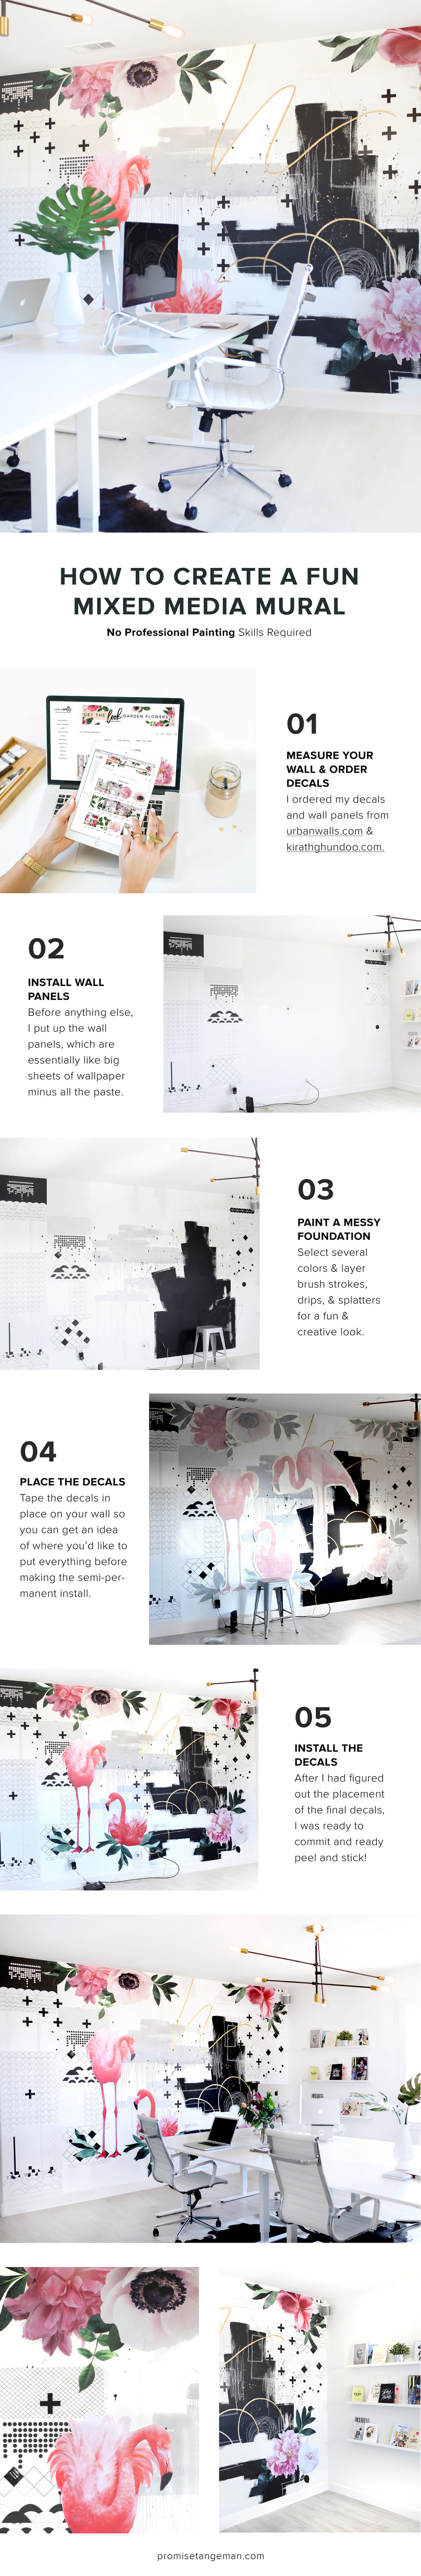 how to create a mixed media mural by Promise Tangeman